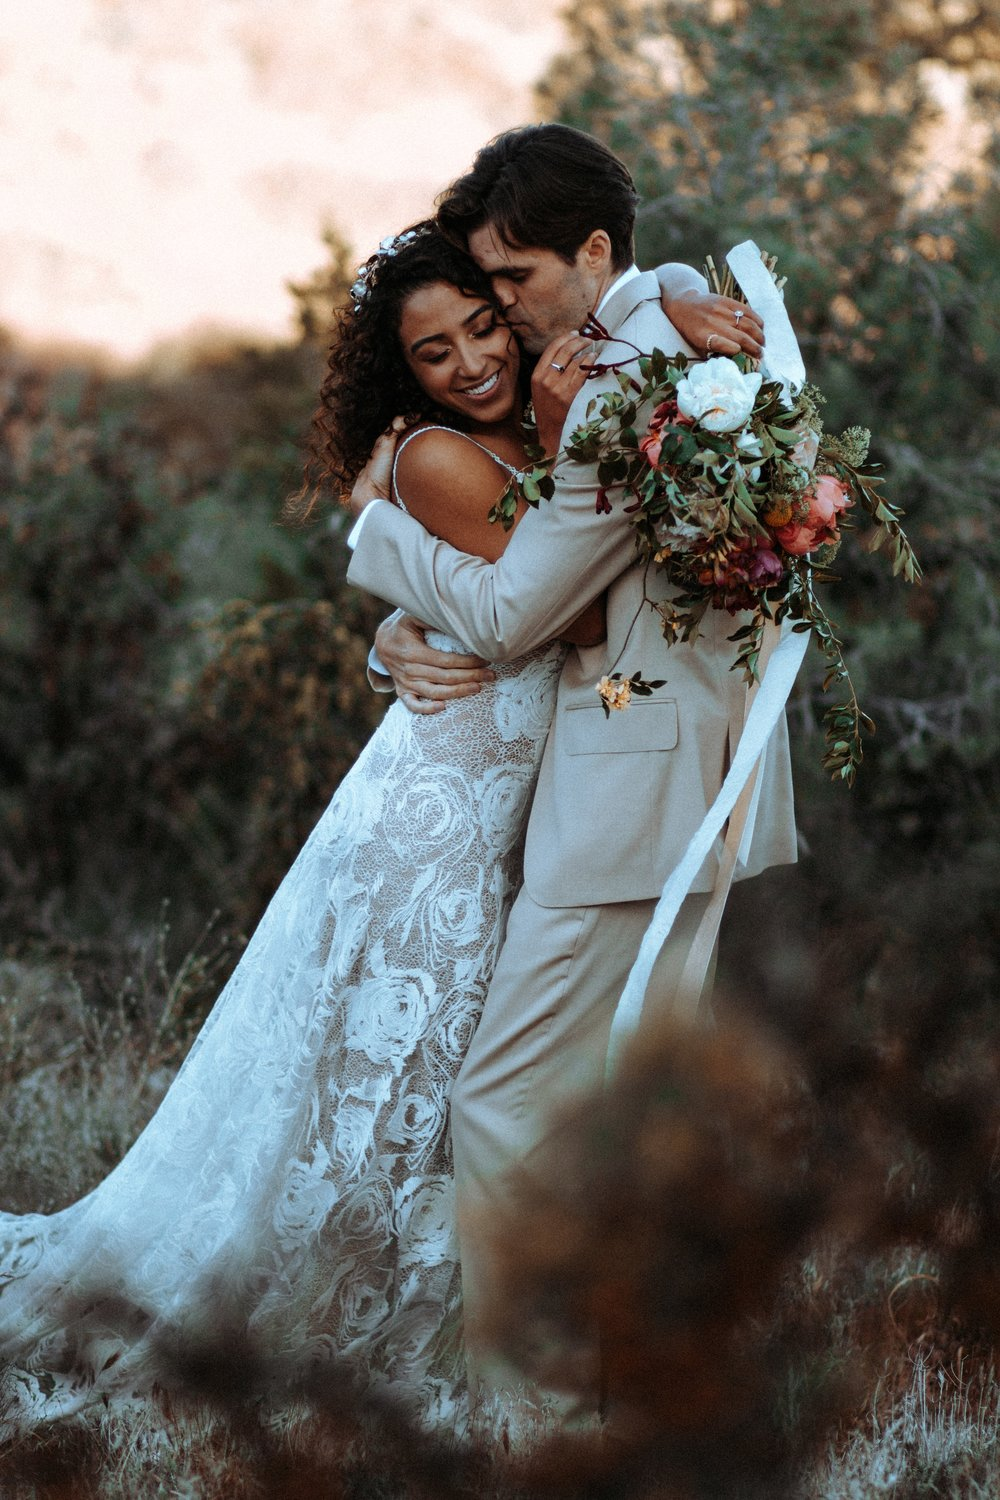 See Lea & Clay's full session